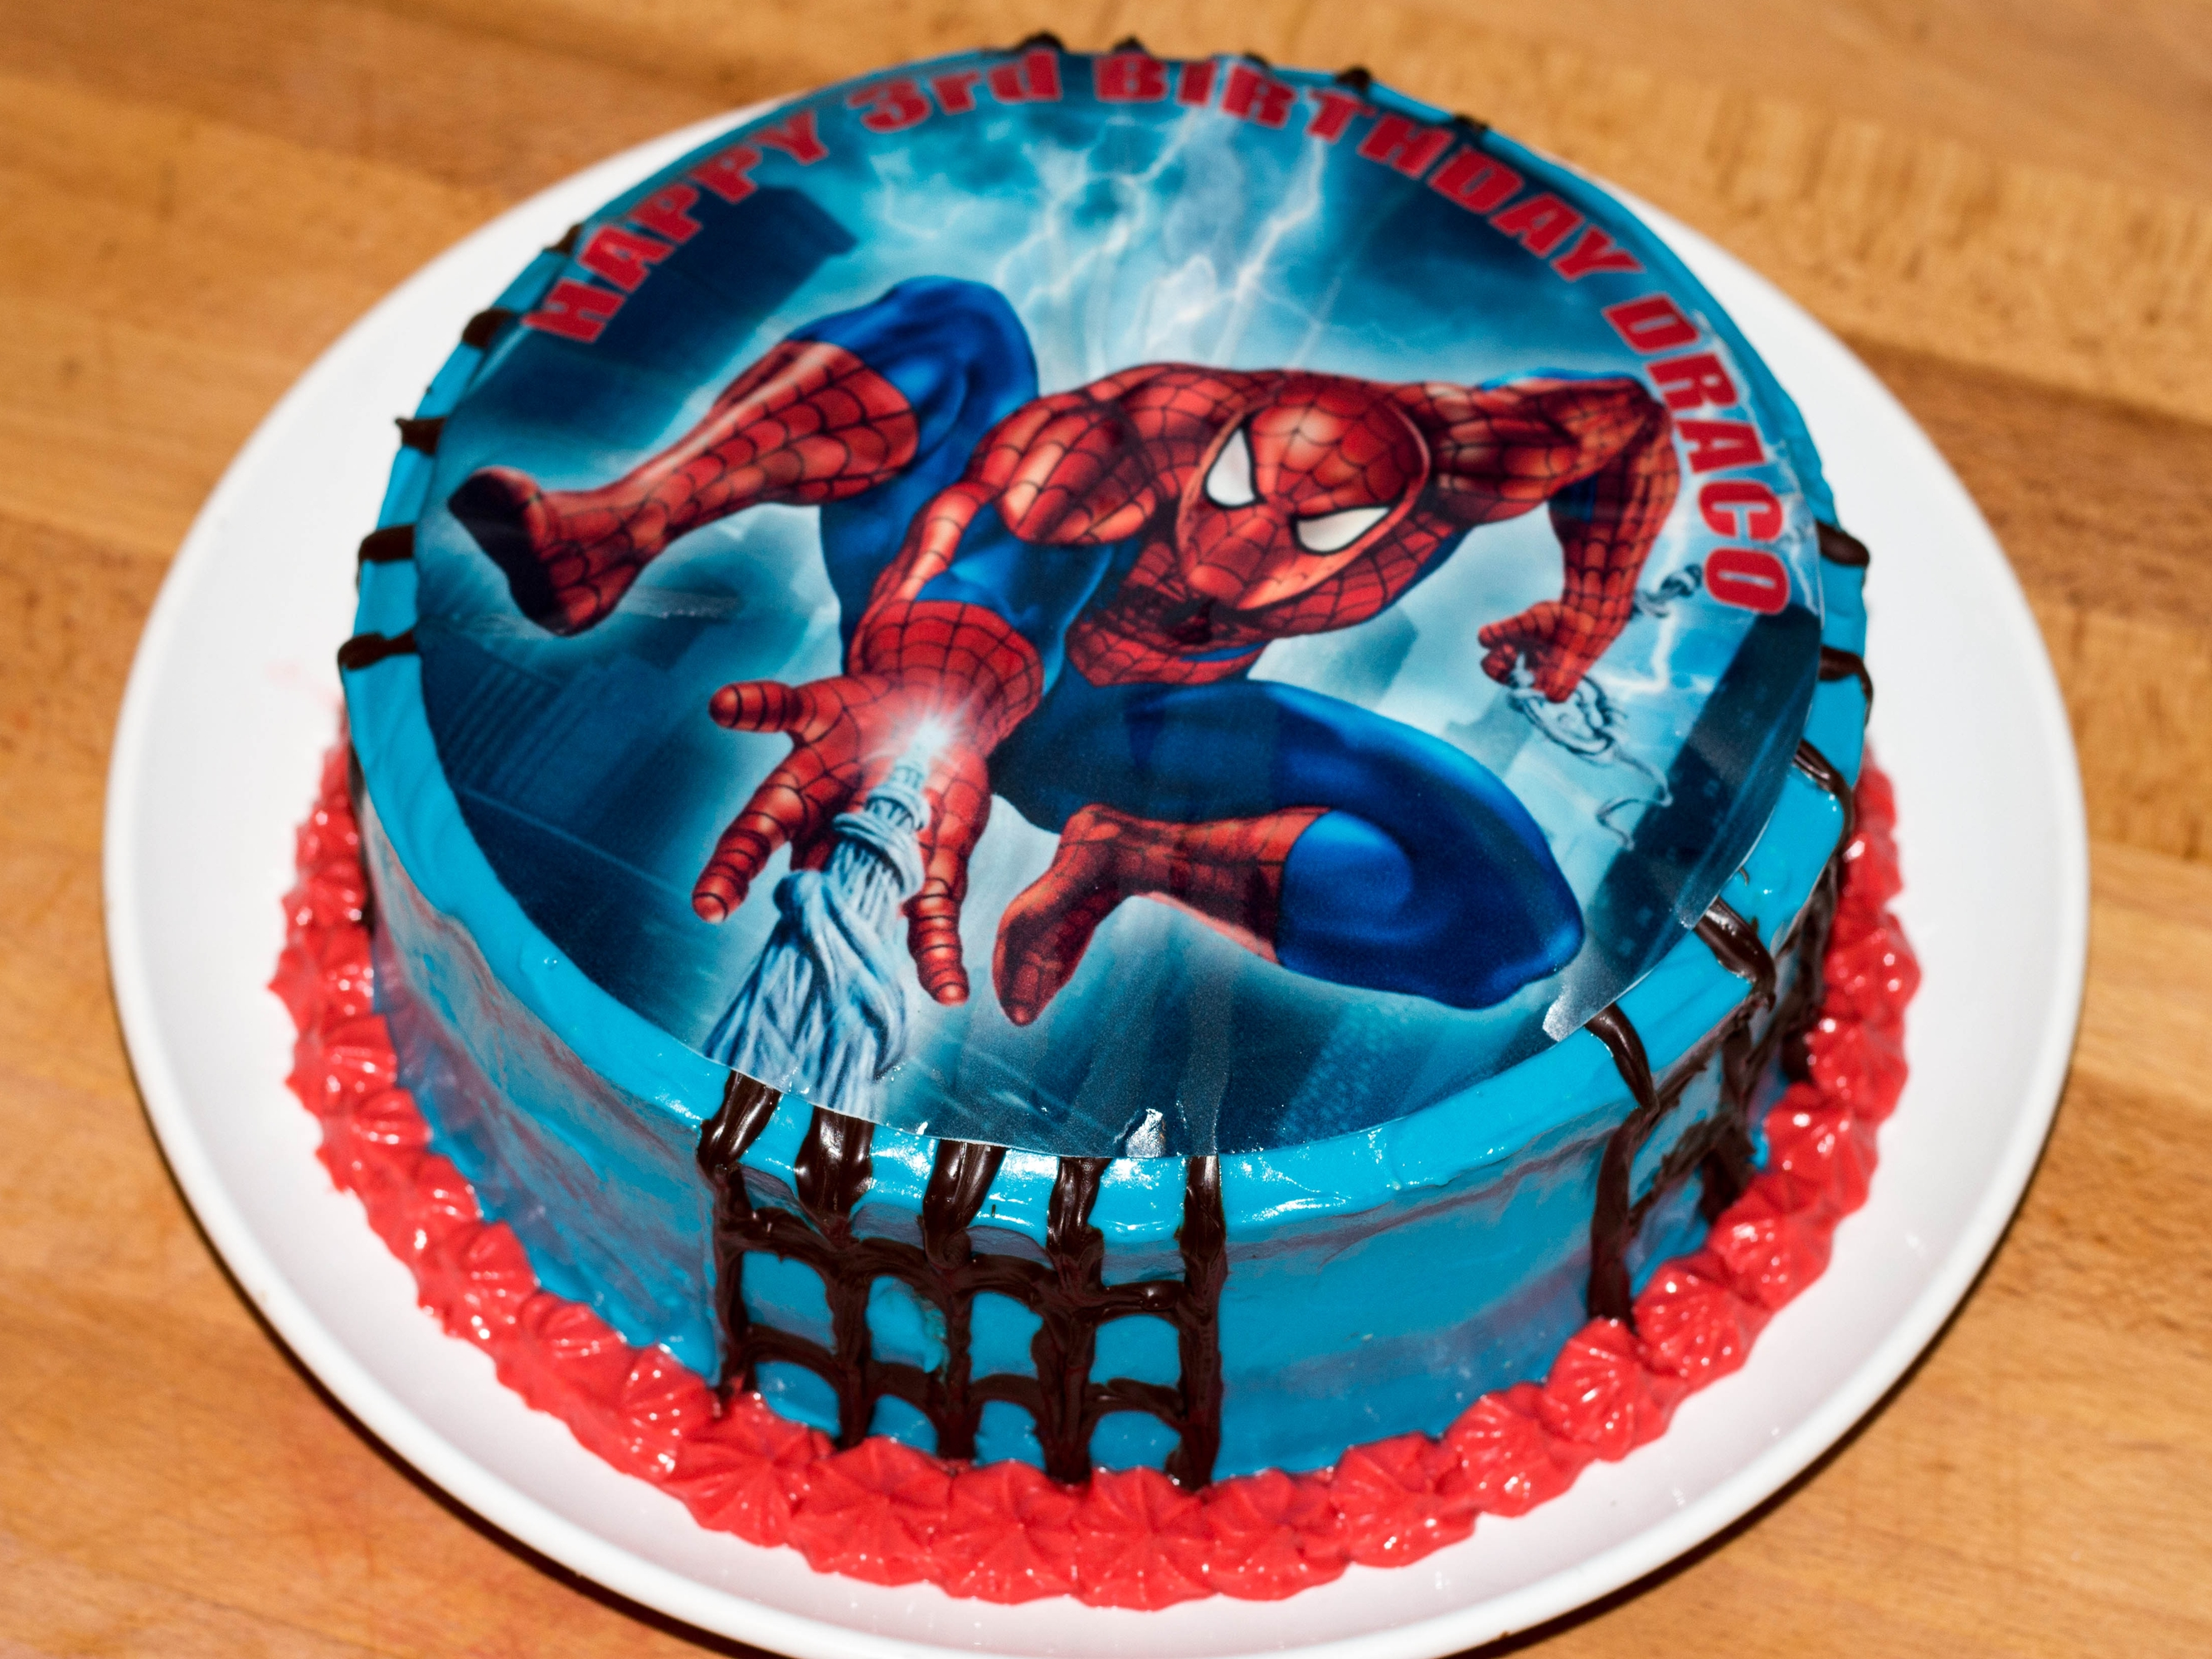 Birthday Cake Designs Spiderman : Red Velvet Spiderman Birthday Cake   Briana s Bakes